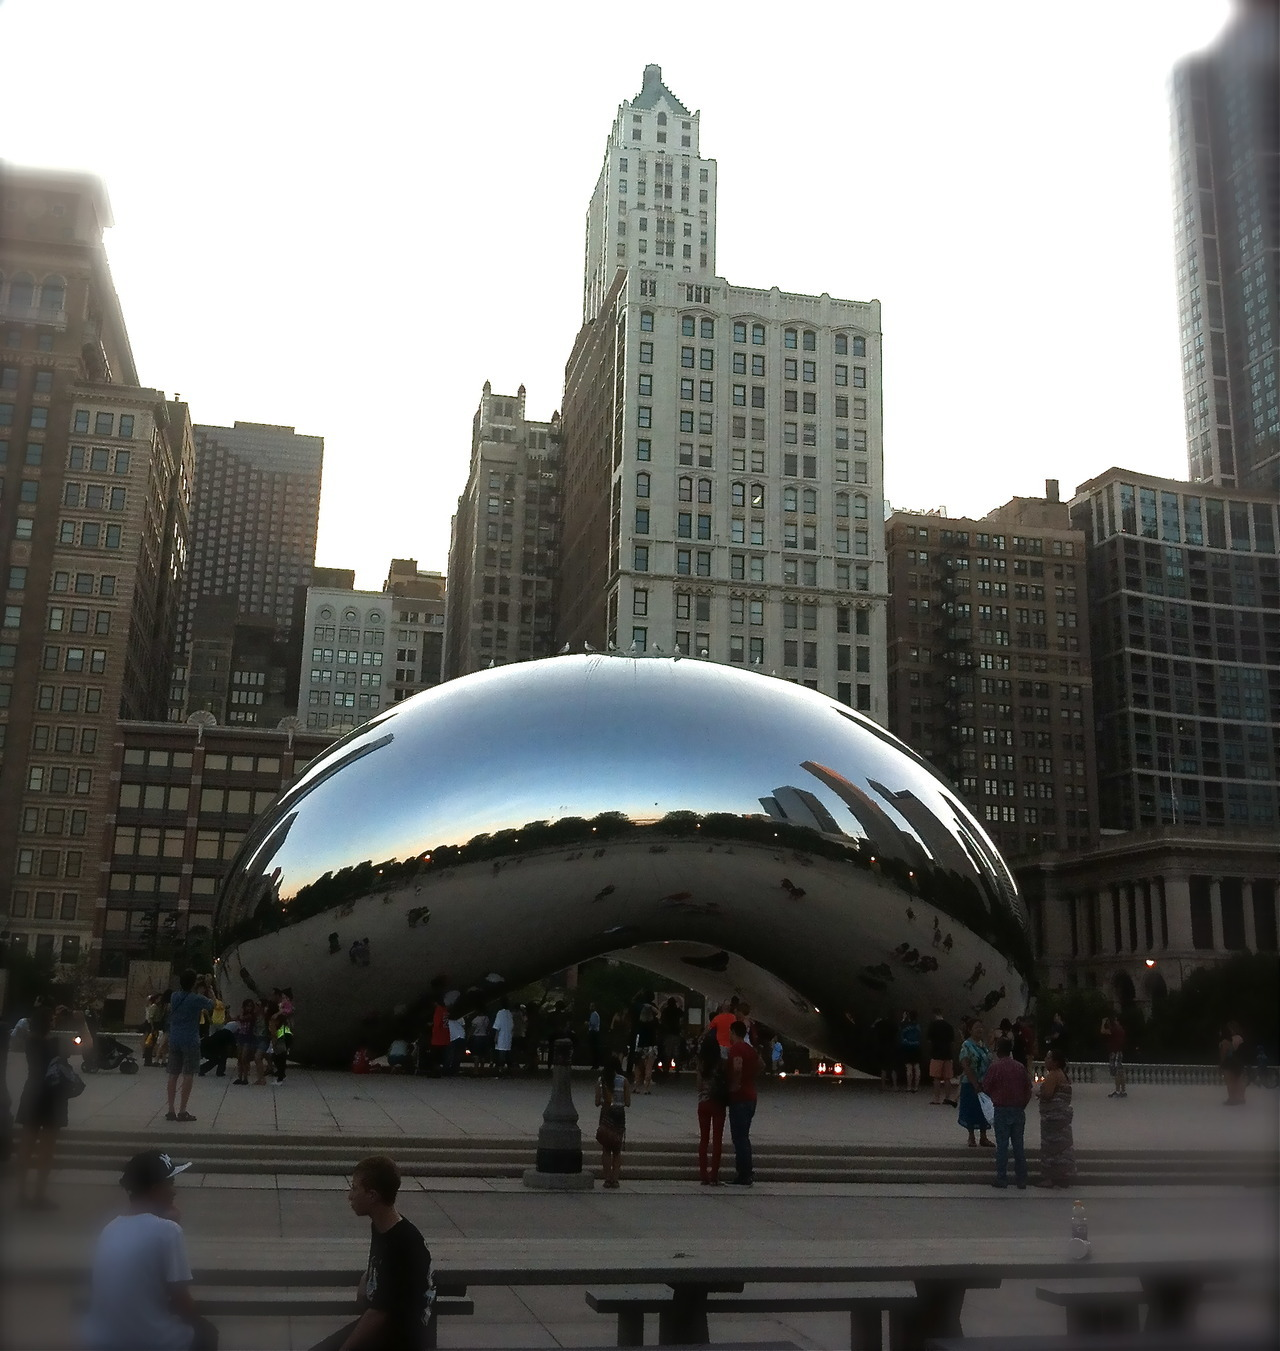 "Cloud Gate by Indian-born British artist Anish Kapoor. Constructed between 2004 and 2006, the sculpture is nicknamed ""The Bean"" because of its bean-like shape. Made up of 168 stainless steel plates welded together, its highly polished exterior has no visible seams. It is 33 by 66 by 42 feet (10 by 20 by 13 m), and weighs 110 short tons (100 t; 98 long tons)."